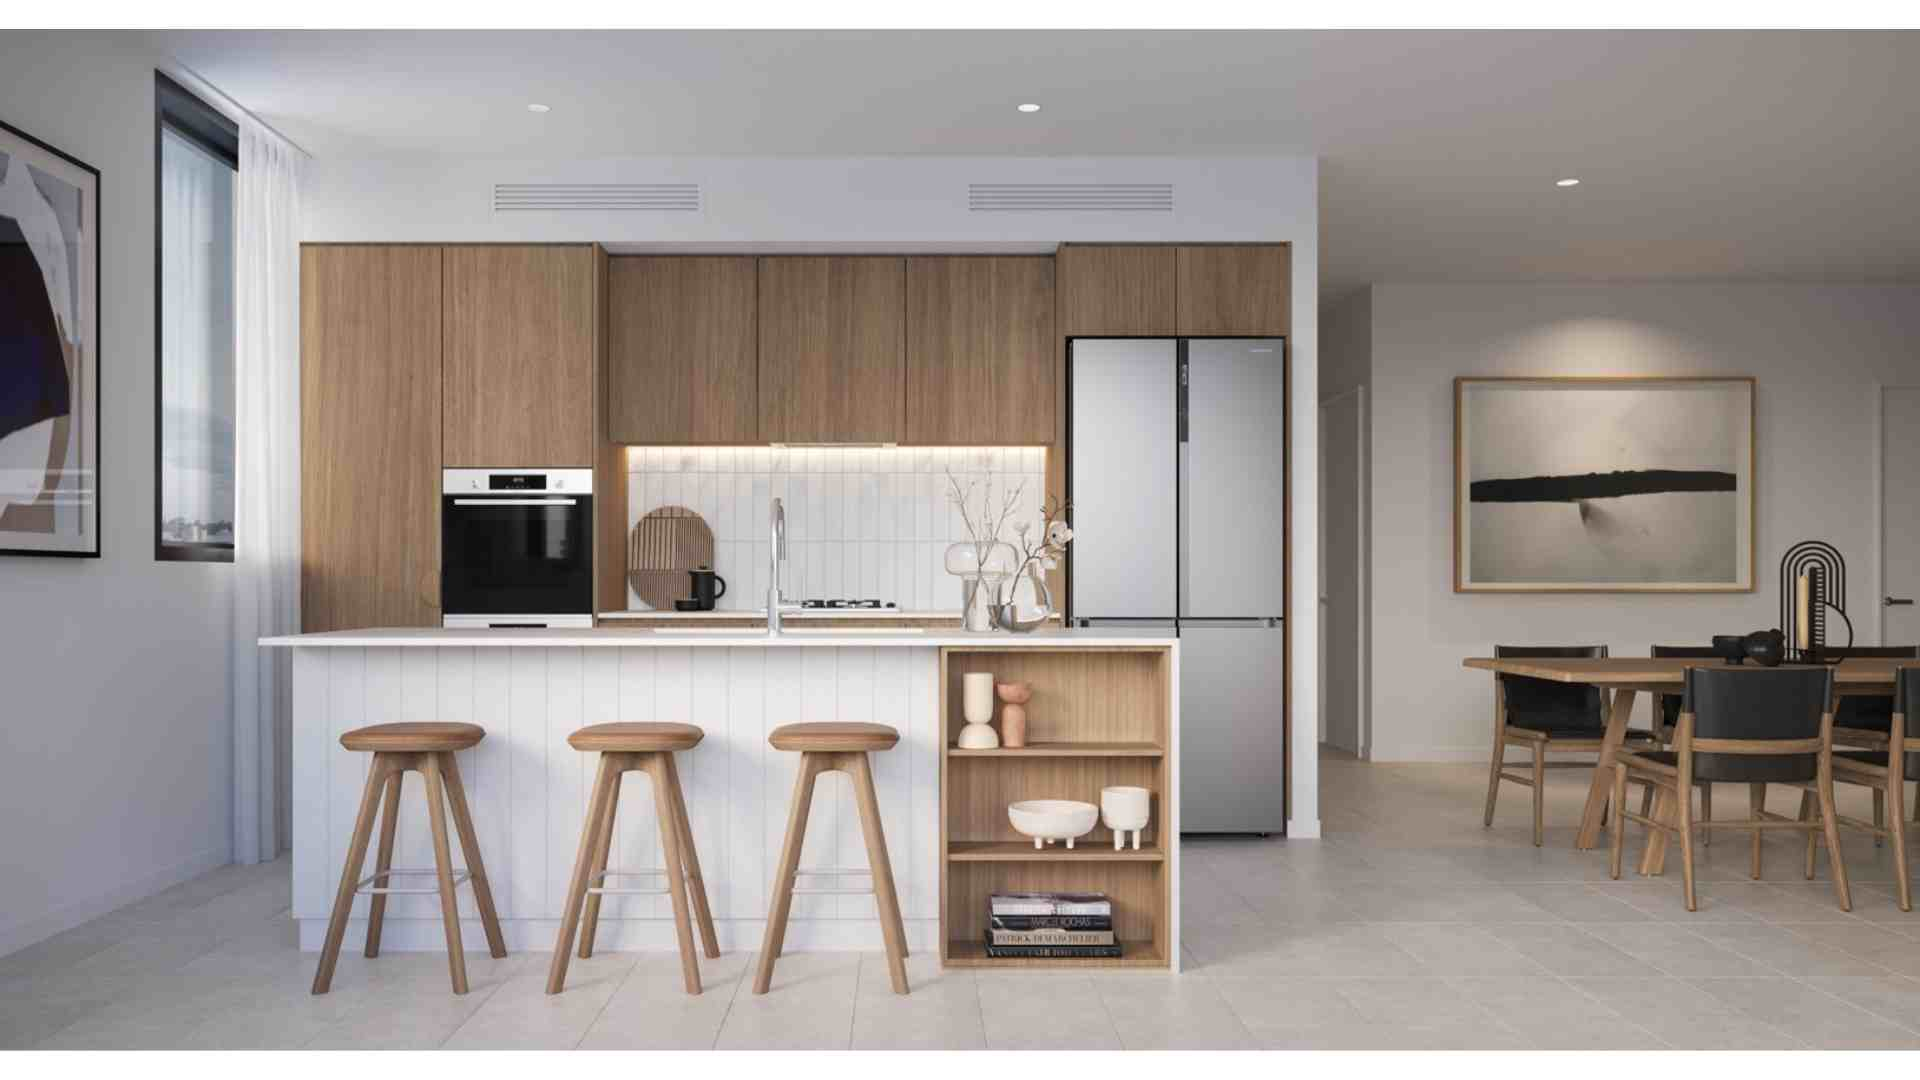 wooden cabinet kitchen, white table top, wooden stool